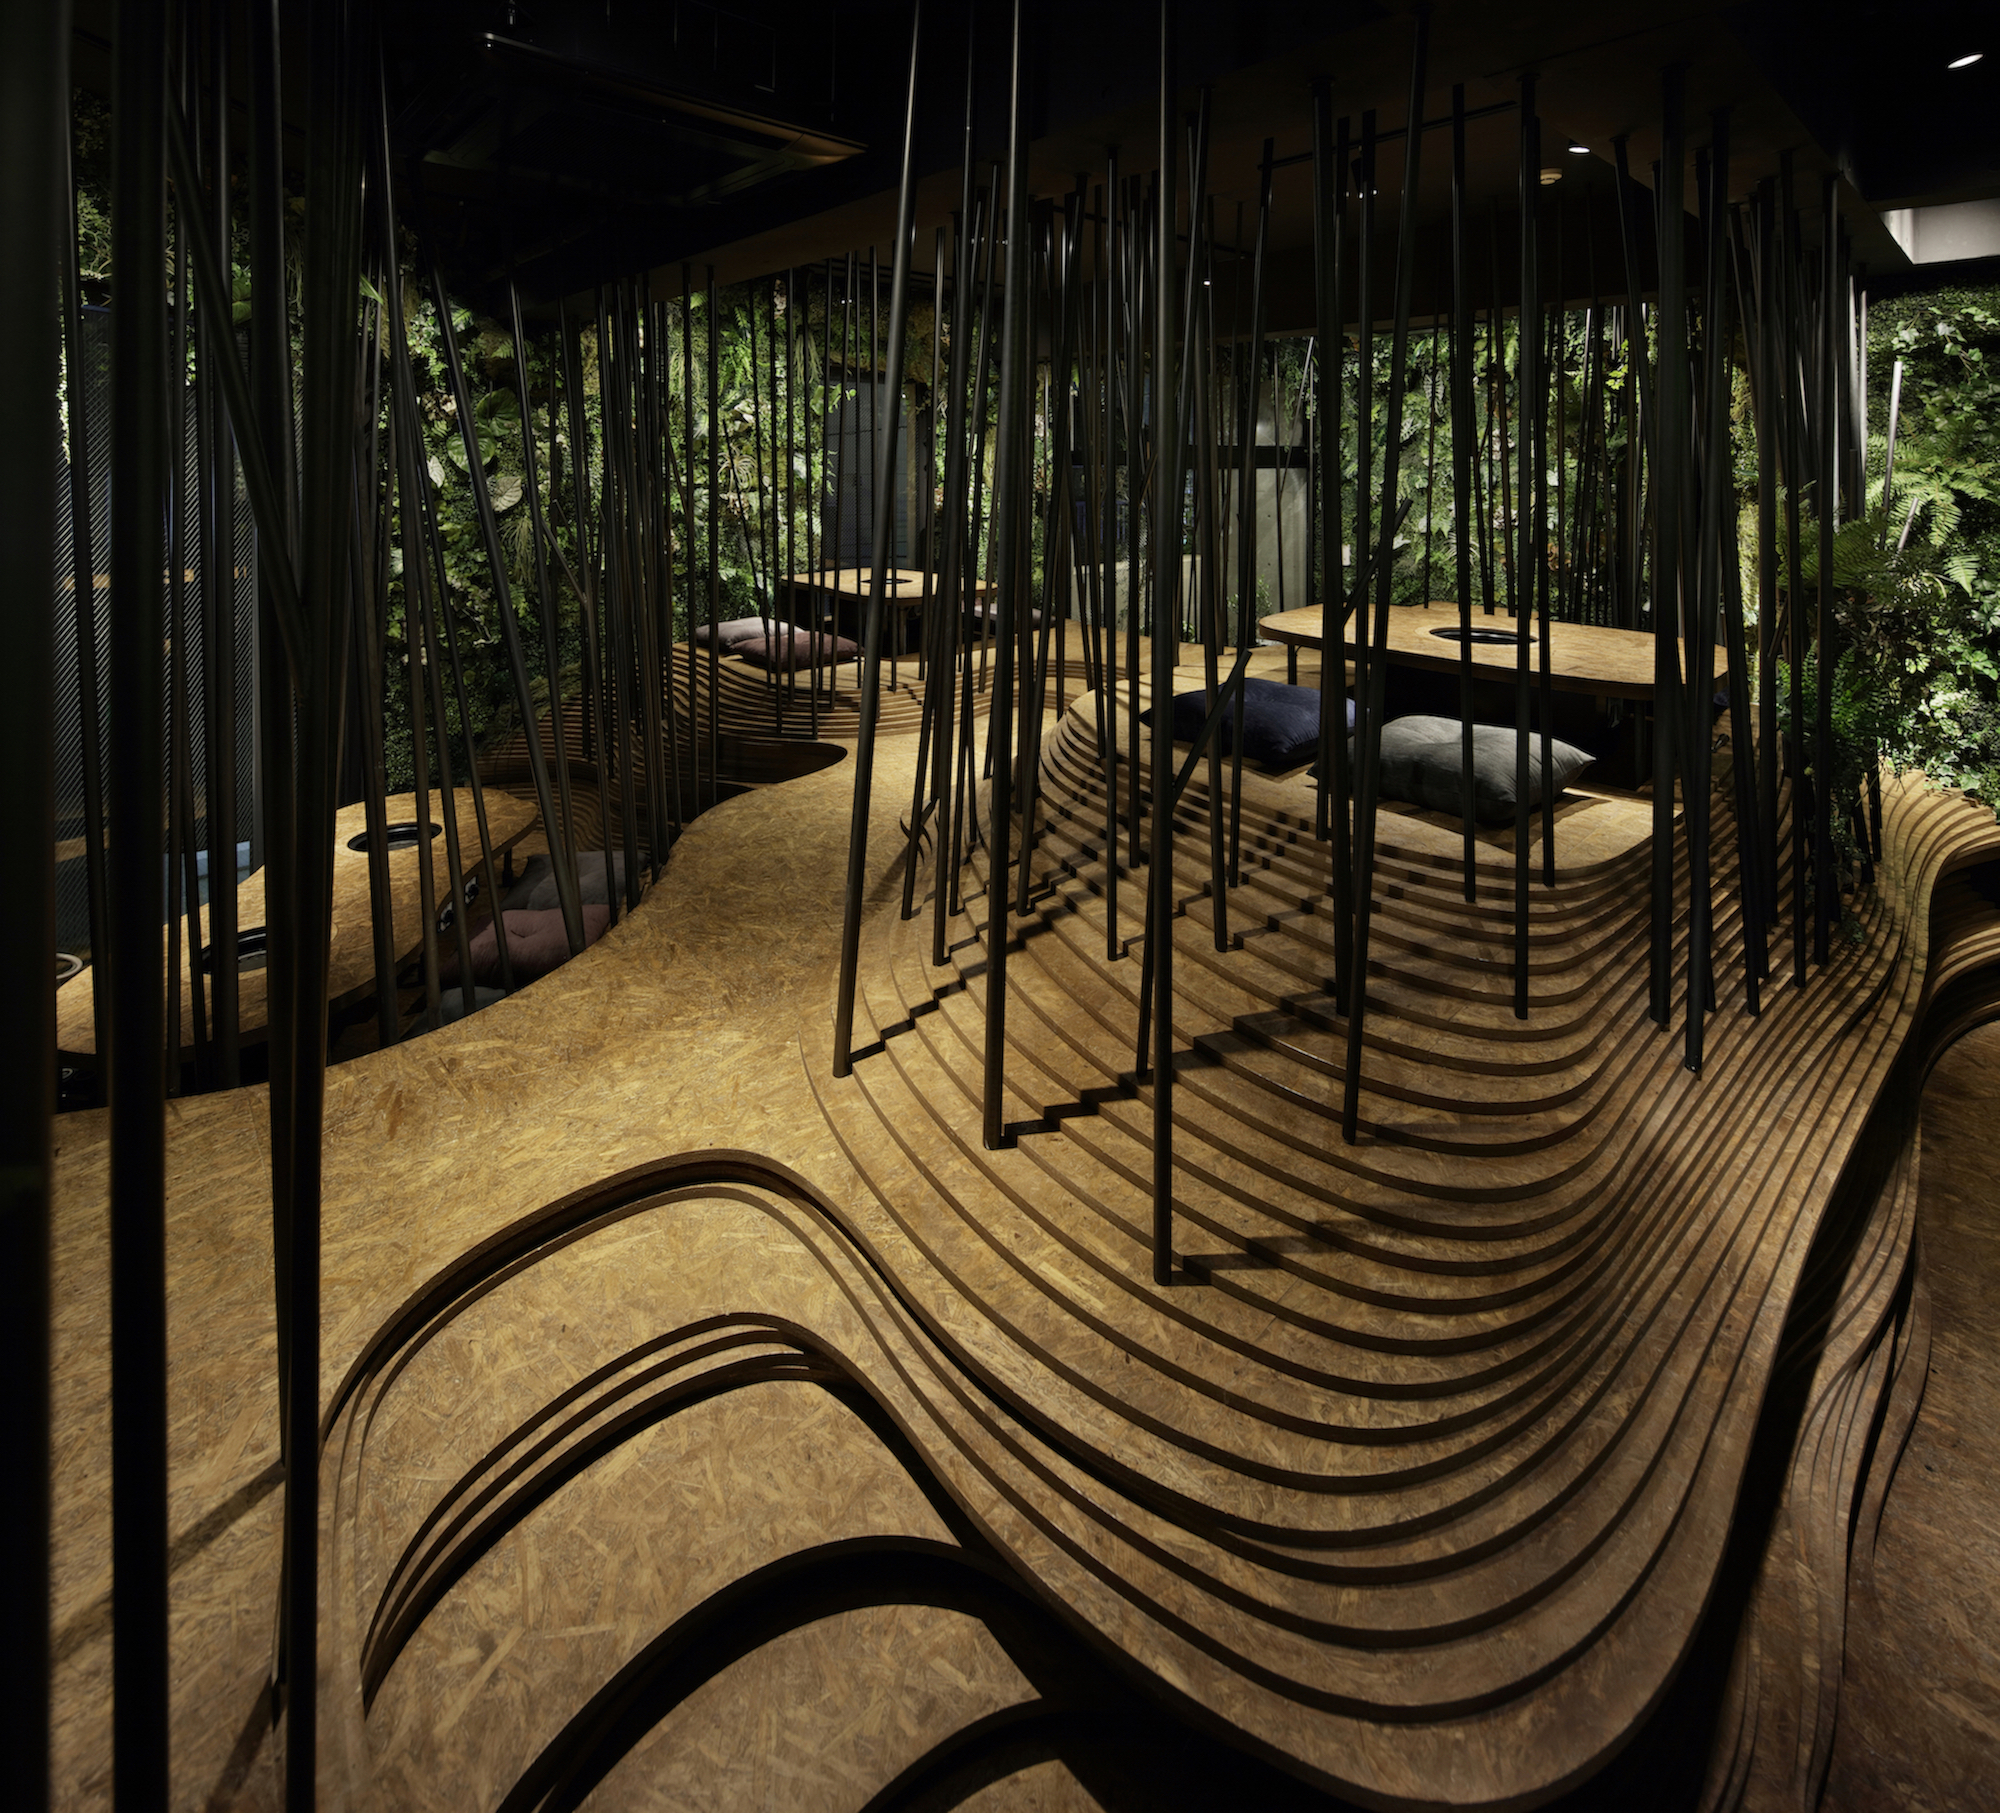 Interior Design of The Year 2019 - NIKUNOTORIKO by Ryoji IEDOKORO ARCHITECTURE OFFICE, Japan